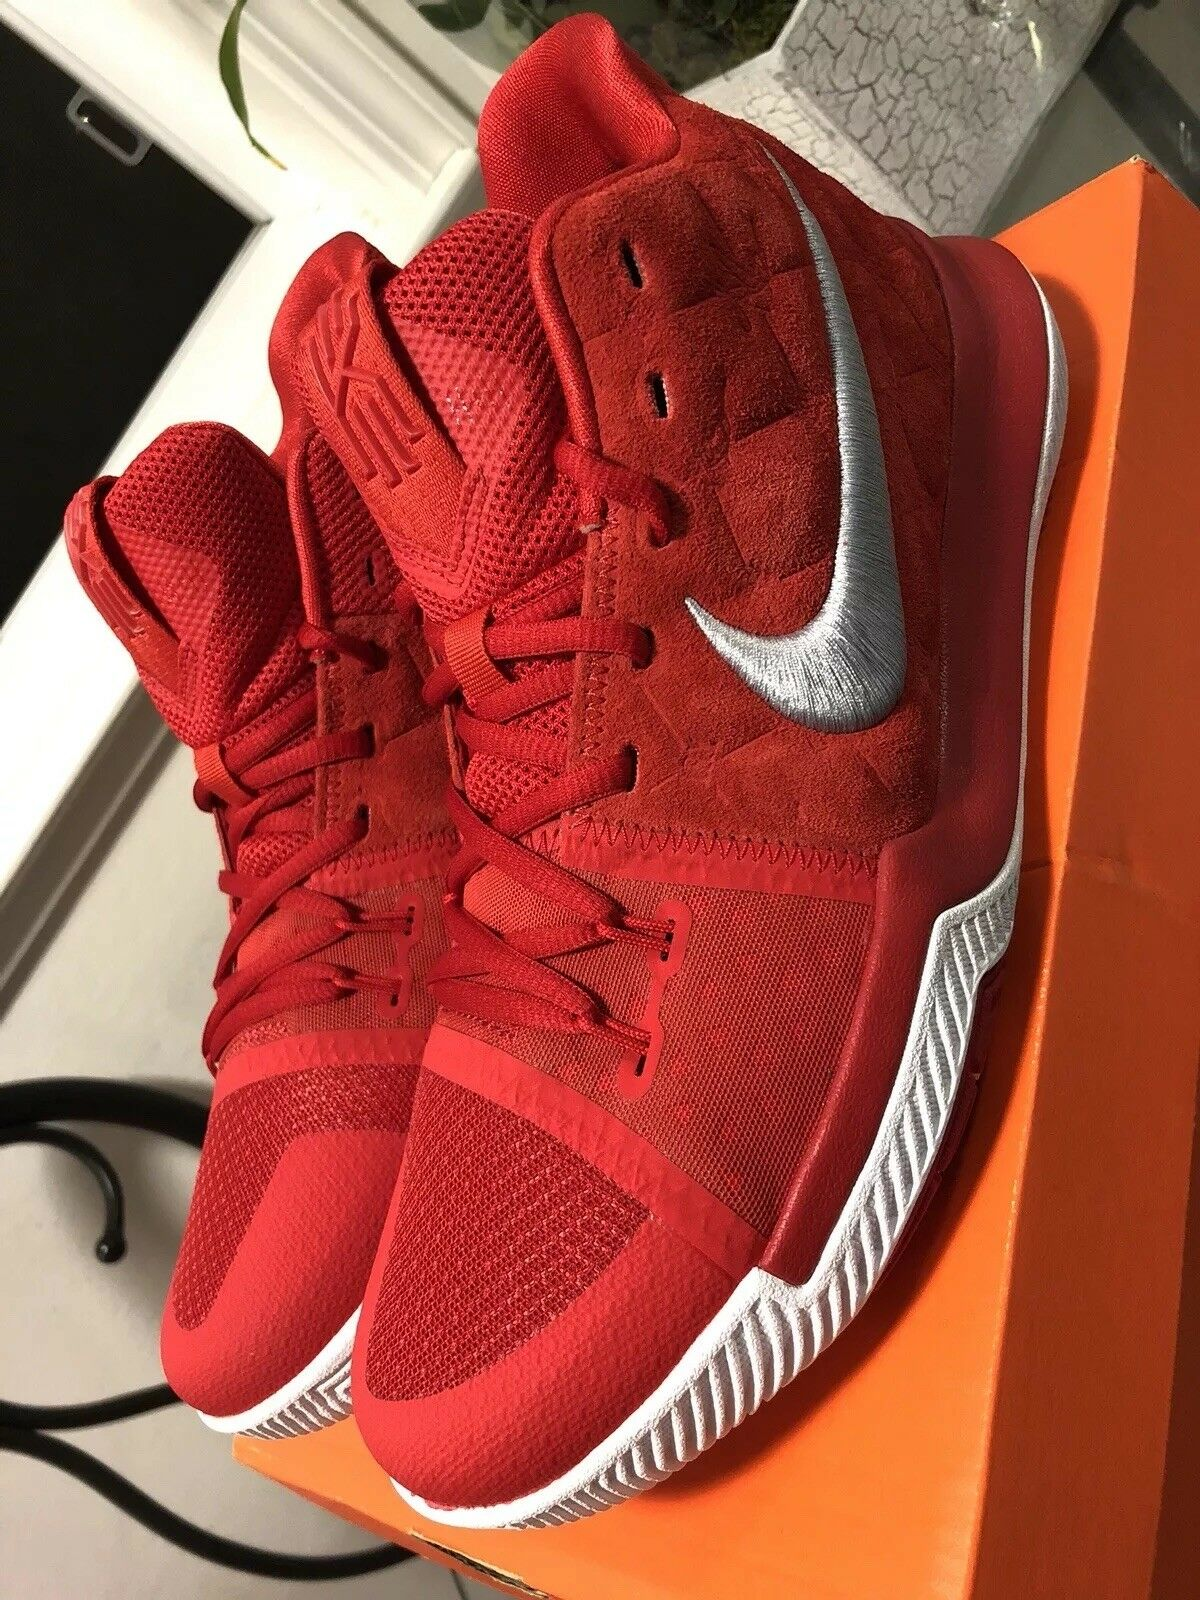 Nike Kyrie 3 sz 10 University Red Suede